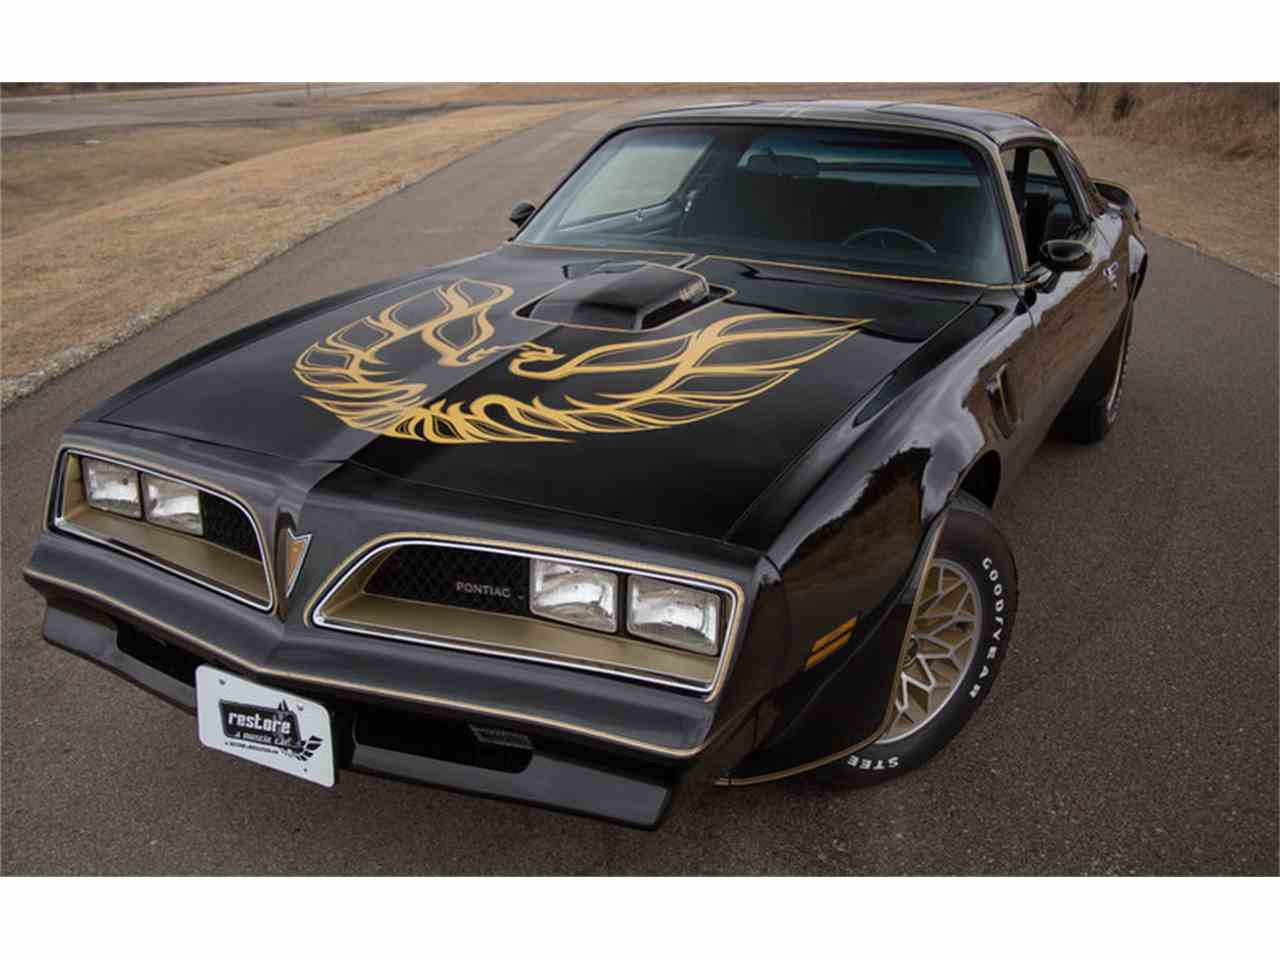 1978 pontiac firebird trans am for sale cc 953044. Black Bedroom Furniture Sets. Home Design Ideas